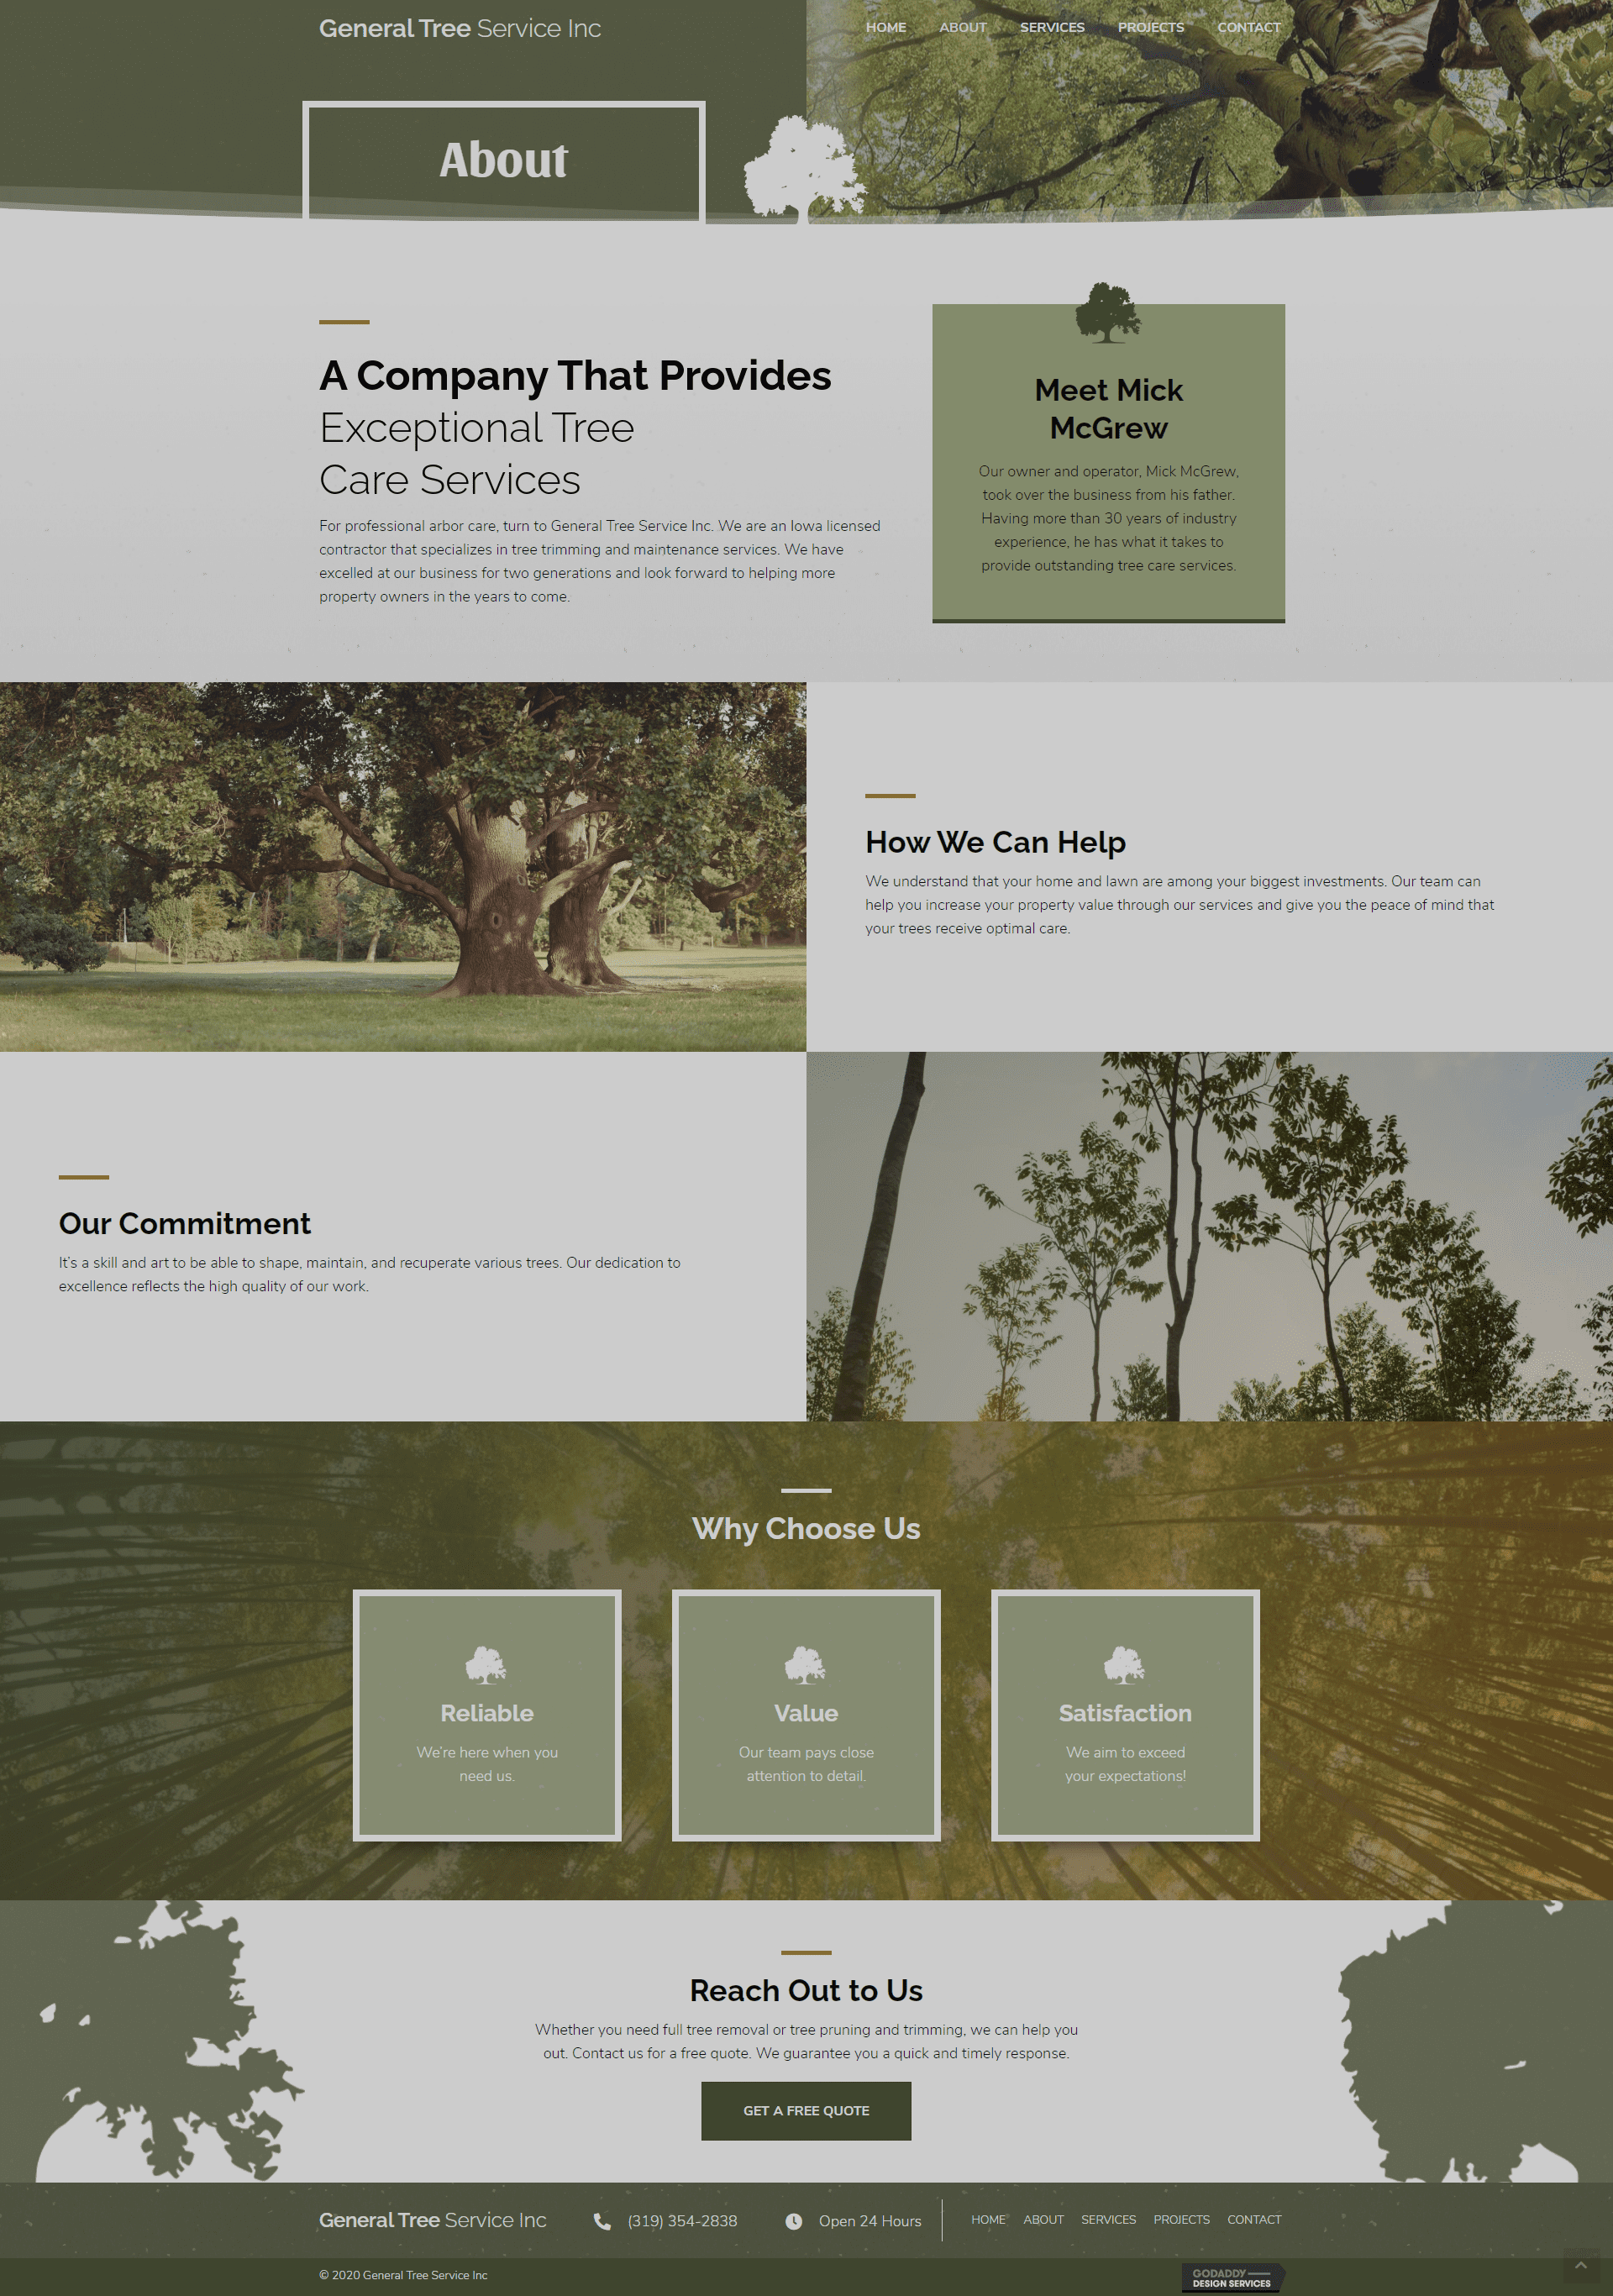 General Tree Service Inc About Page